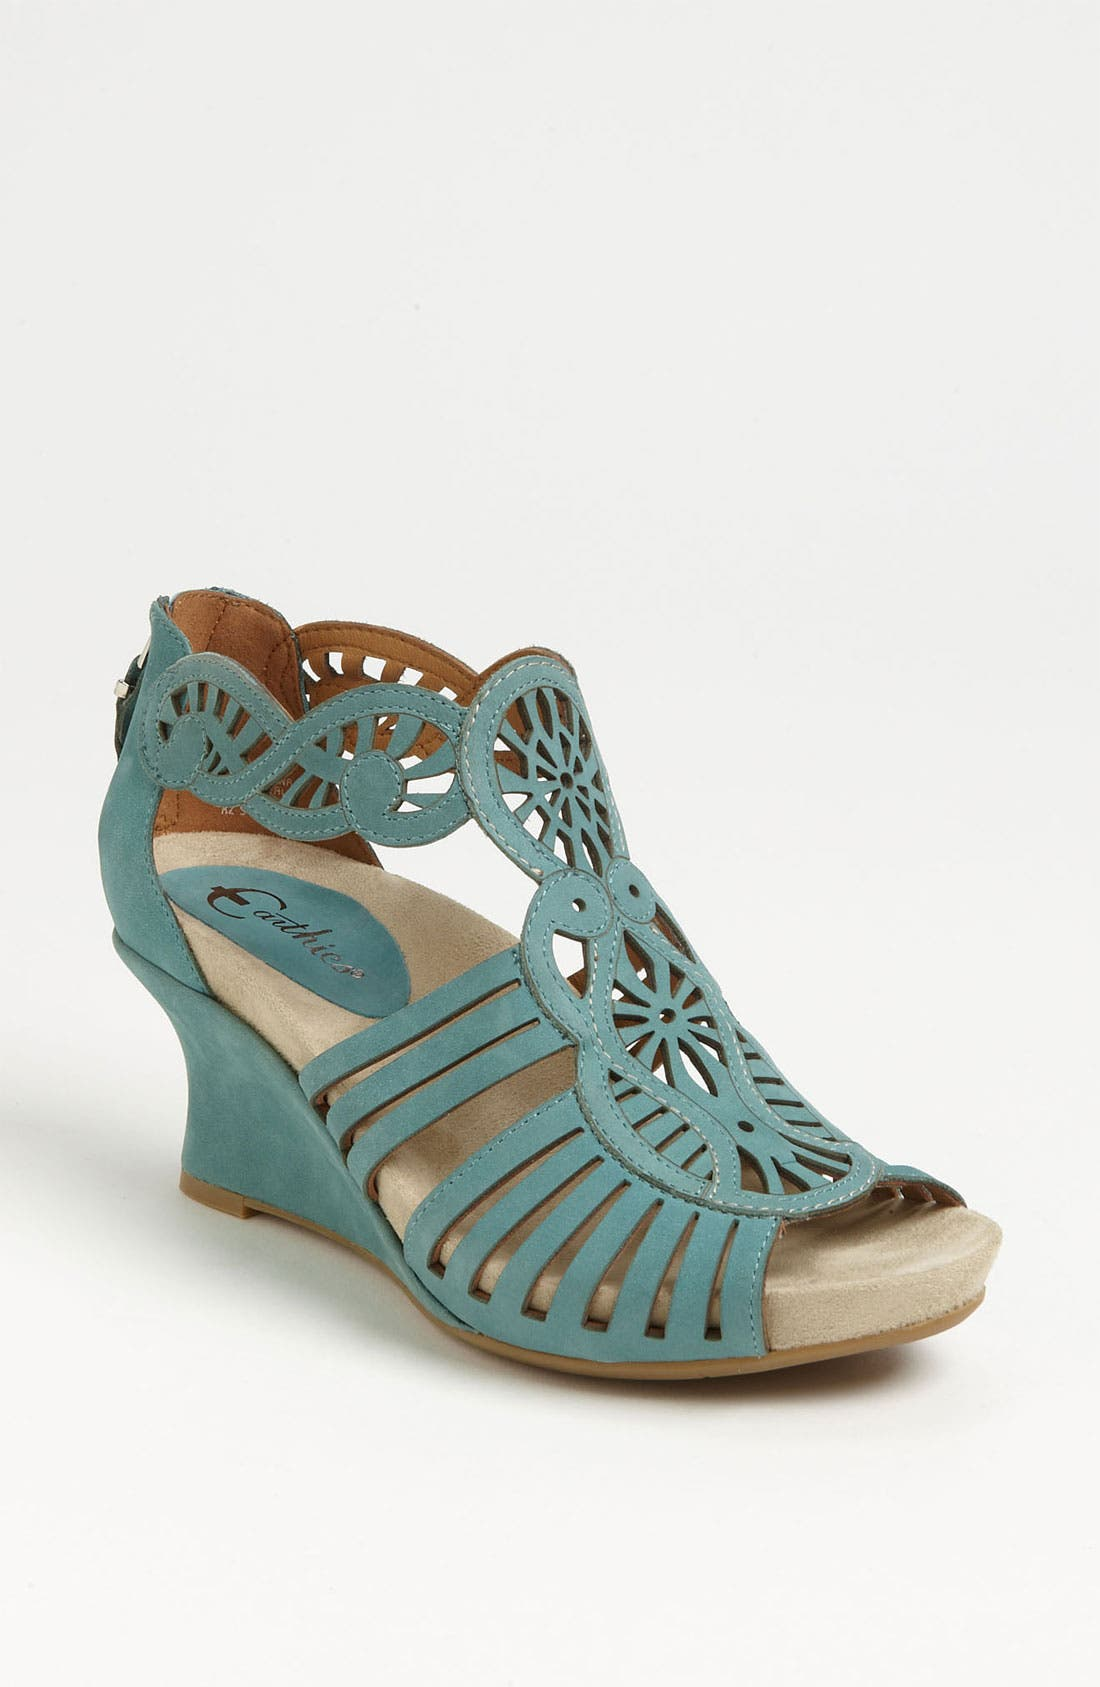 'Caradonna' Sandal,                         Main,                         color, Light Teal